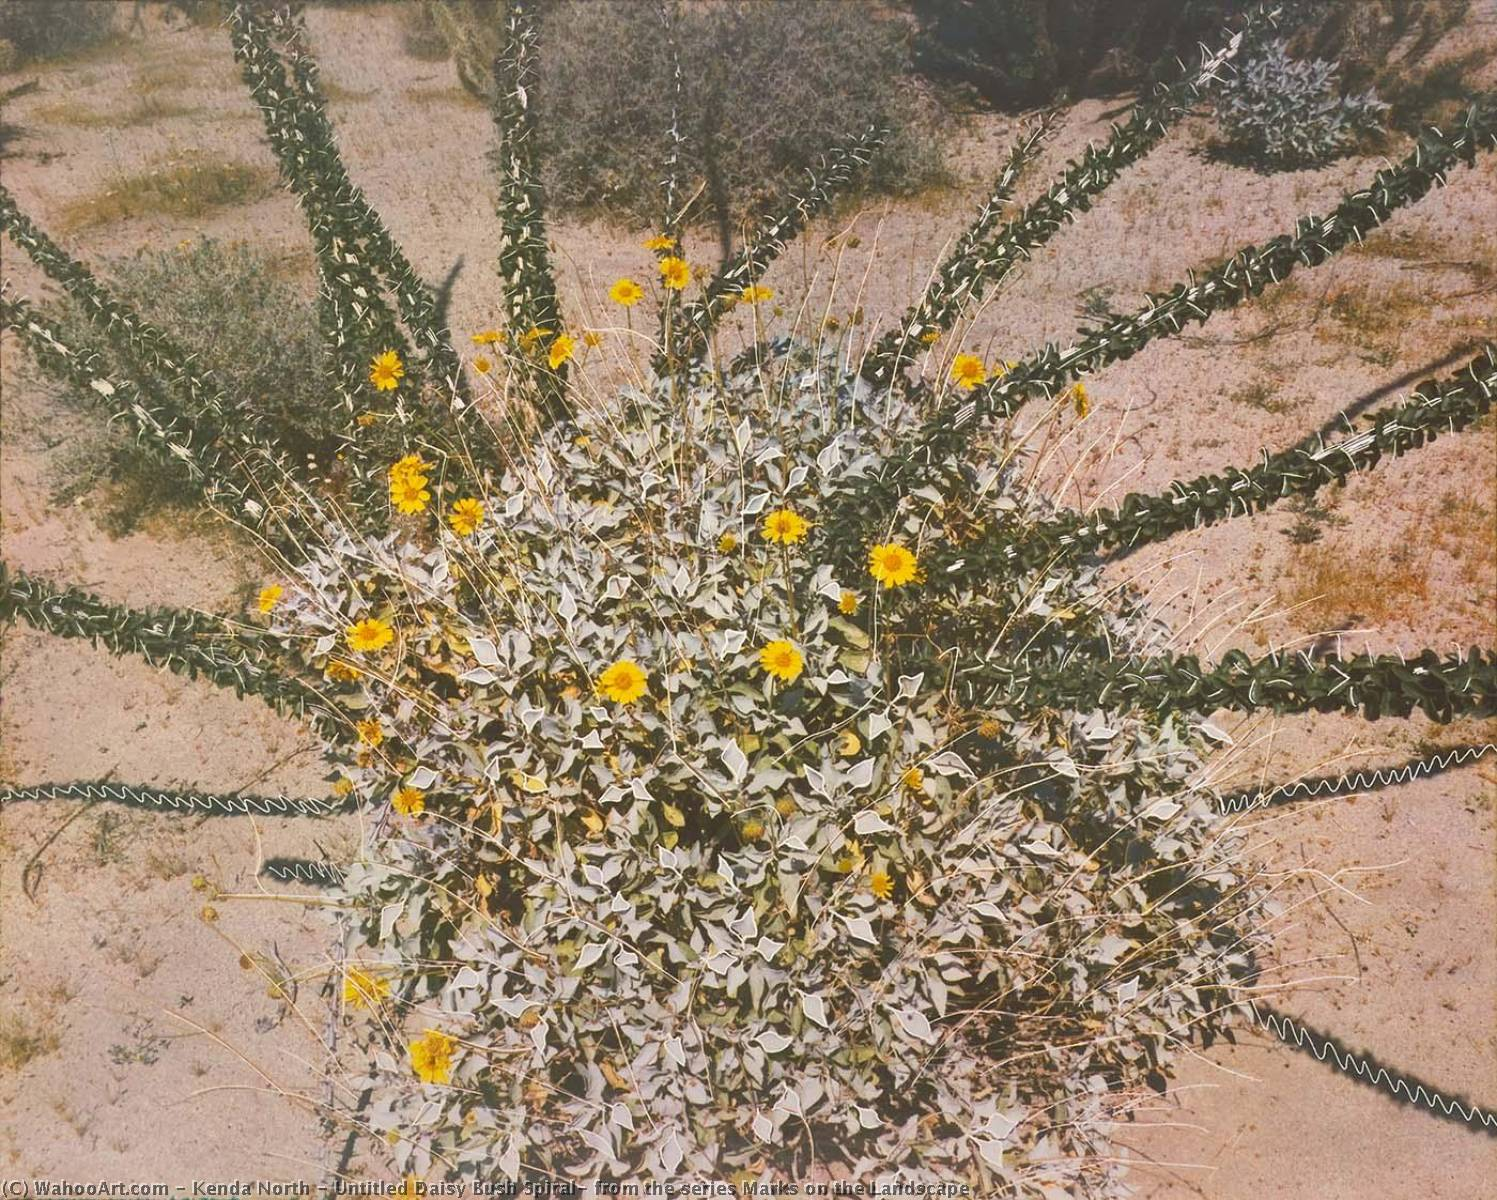 Wikioo.org - The Encyclopedia of Fine Arts - Painting, Artwork by Kenda North - Untitled Daisy Bush Spiral, from the series Marks on the Landscape